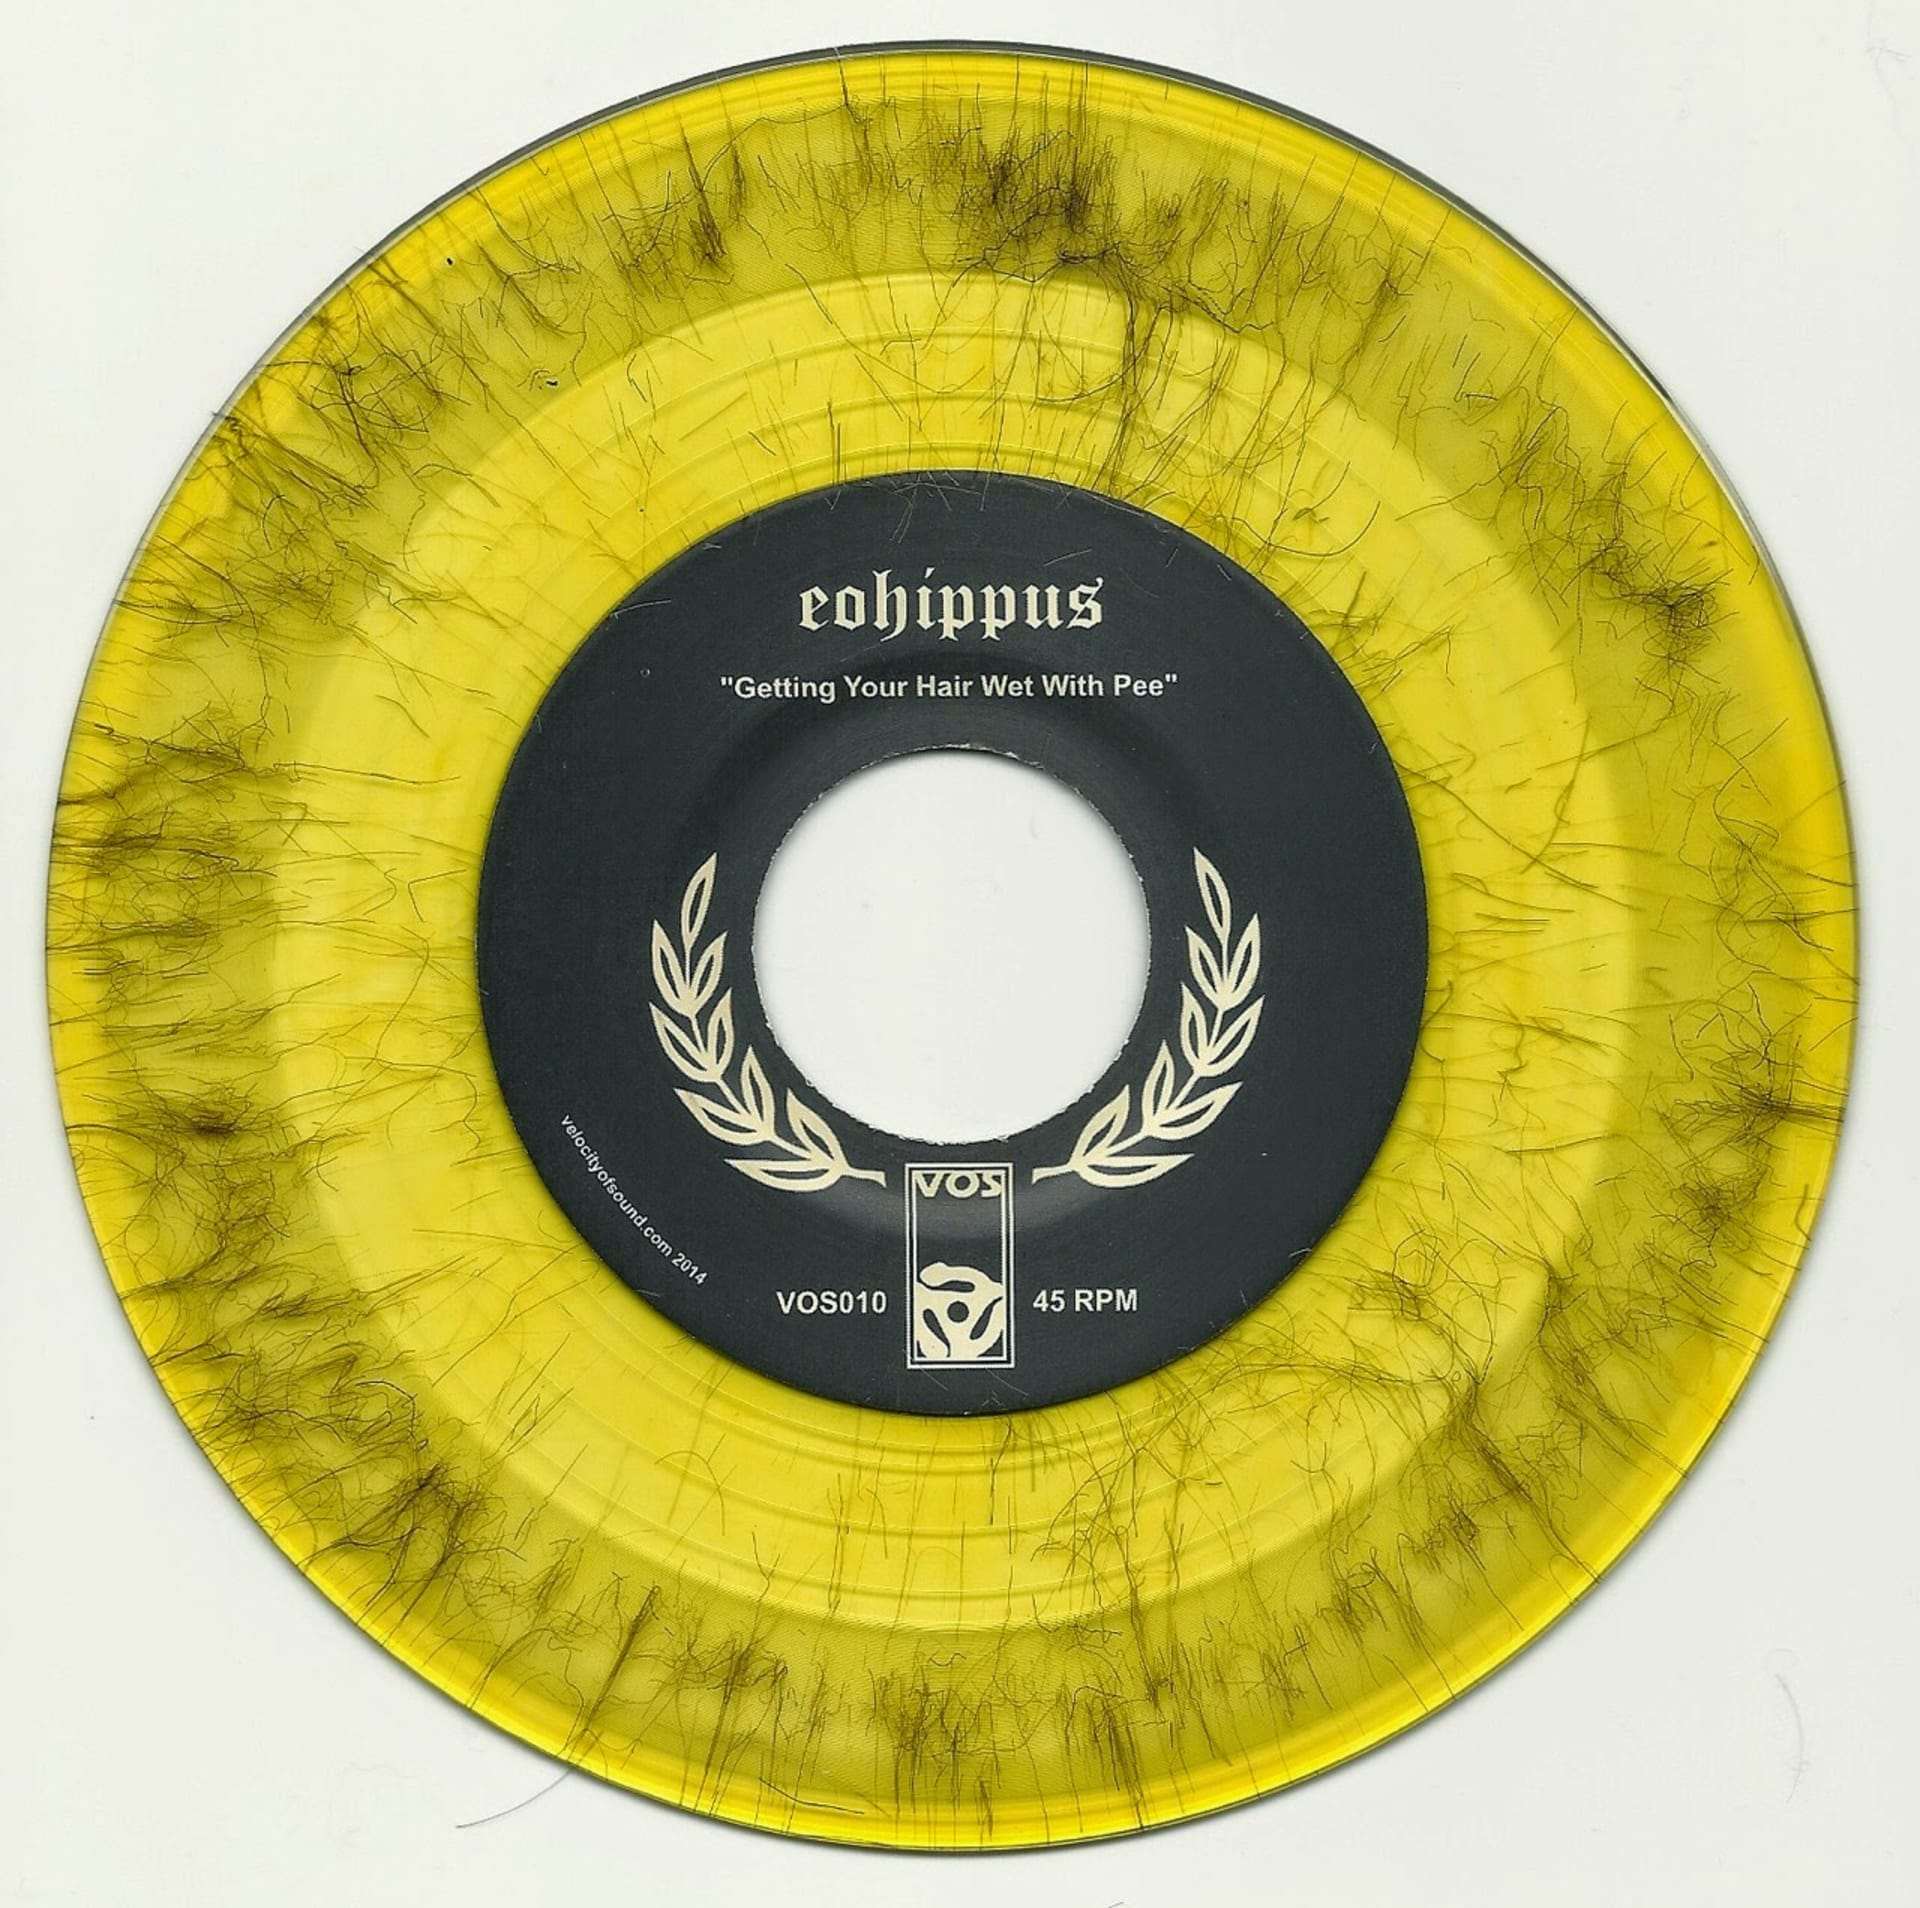 Eohippus – Getting Your Hair Wet With Pee (Velocity Of Sound, 2014)